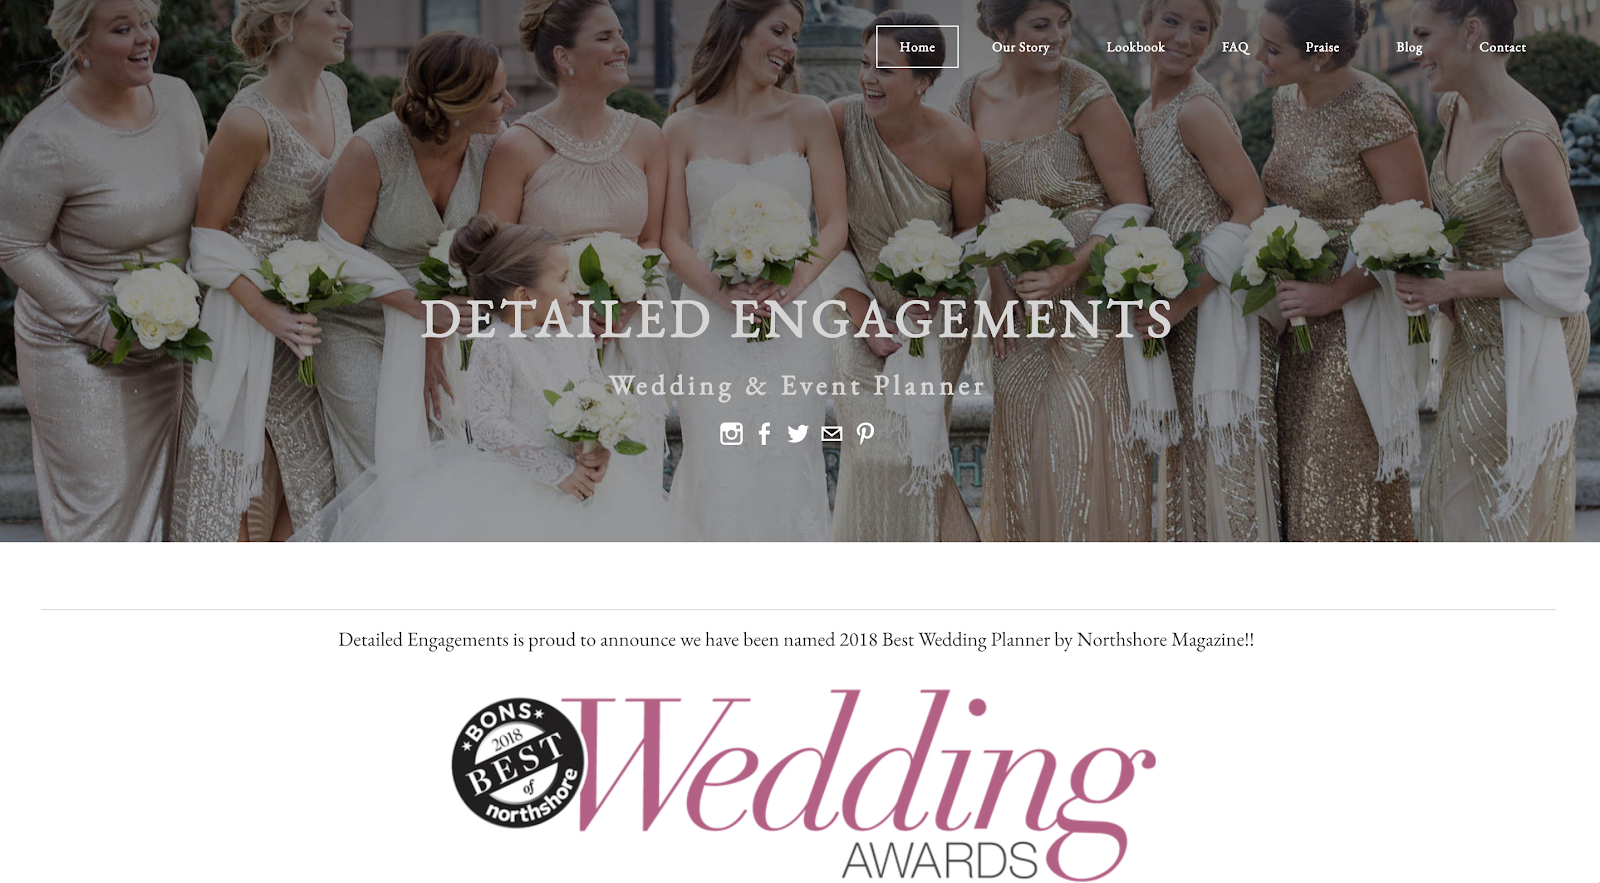 Example of a Wedding Website Built with Free Blogging Platform Weebly